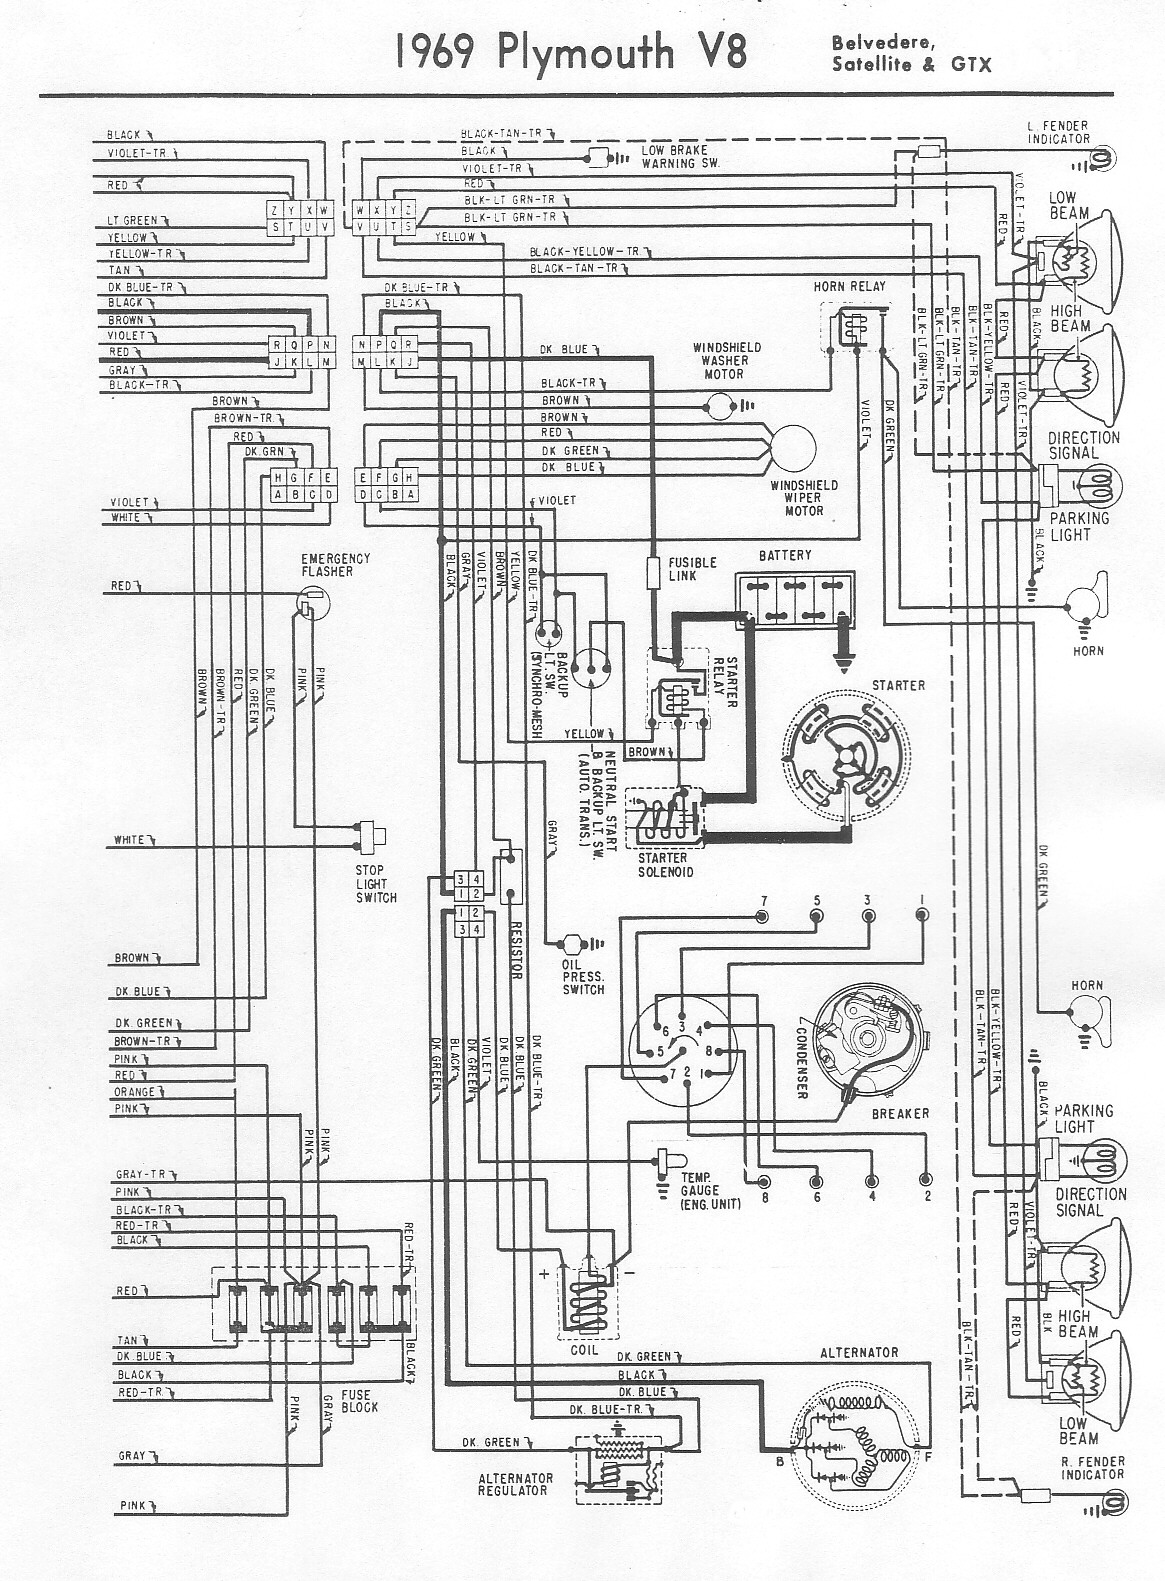 68 valiant wiring diagram 1969 plymouth fury convertible wiring diagram wiring diagram  1969 plymouth fury convertible wiring